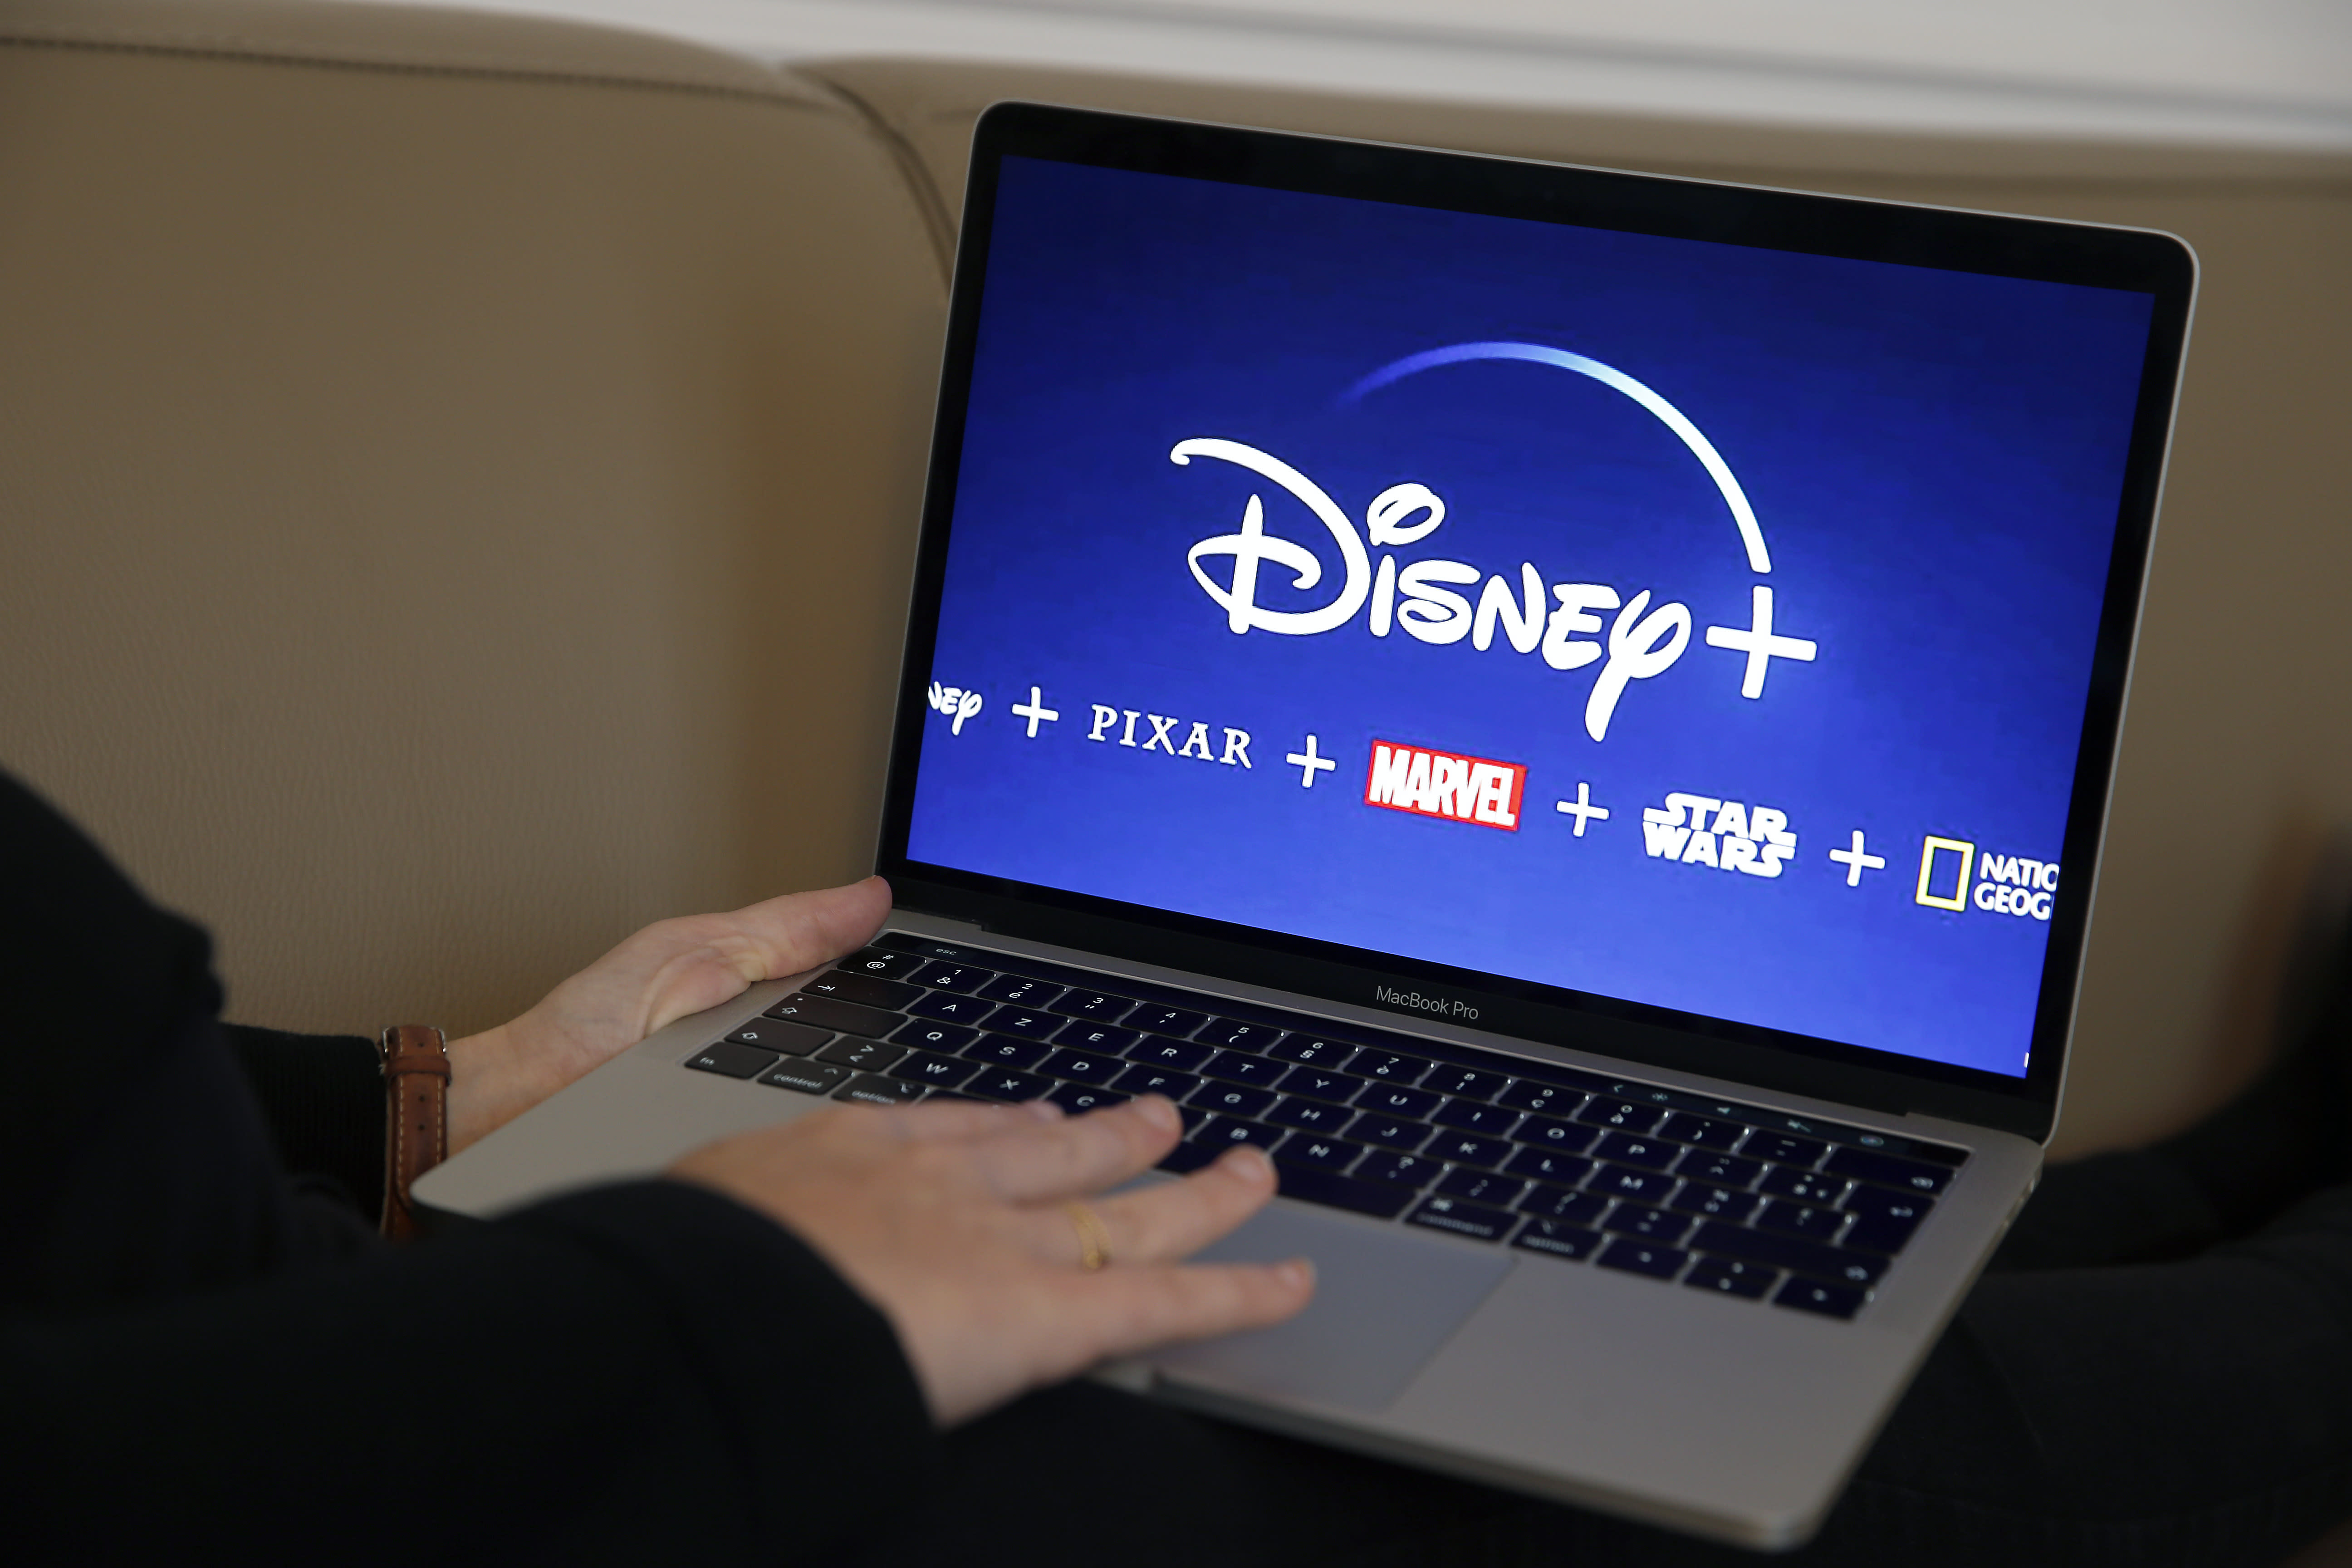 Disney responds to data breach after thousands of Disney+ accounts hacked